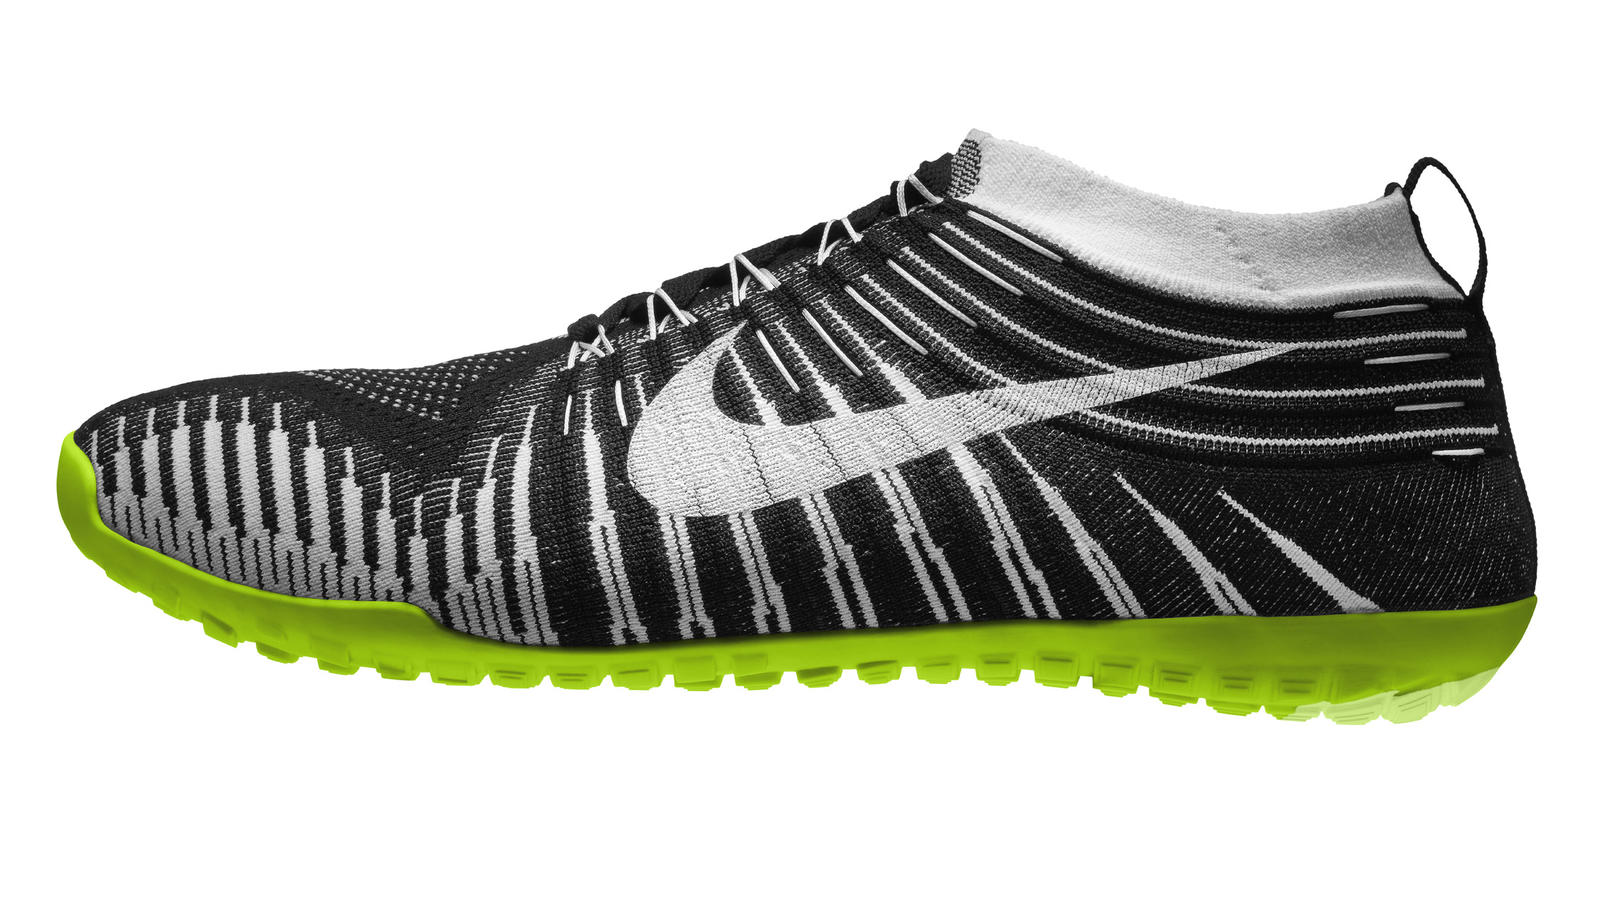 New Nike Free Hyperfeel Functions as an